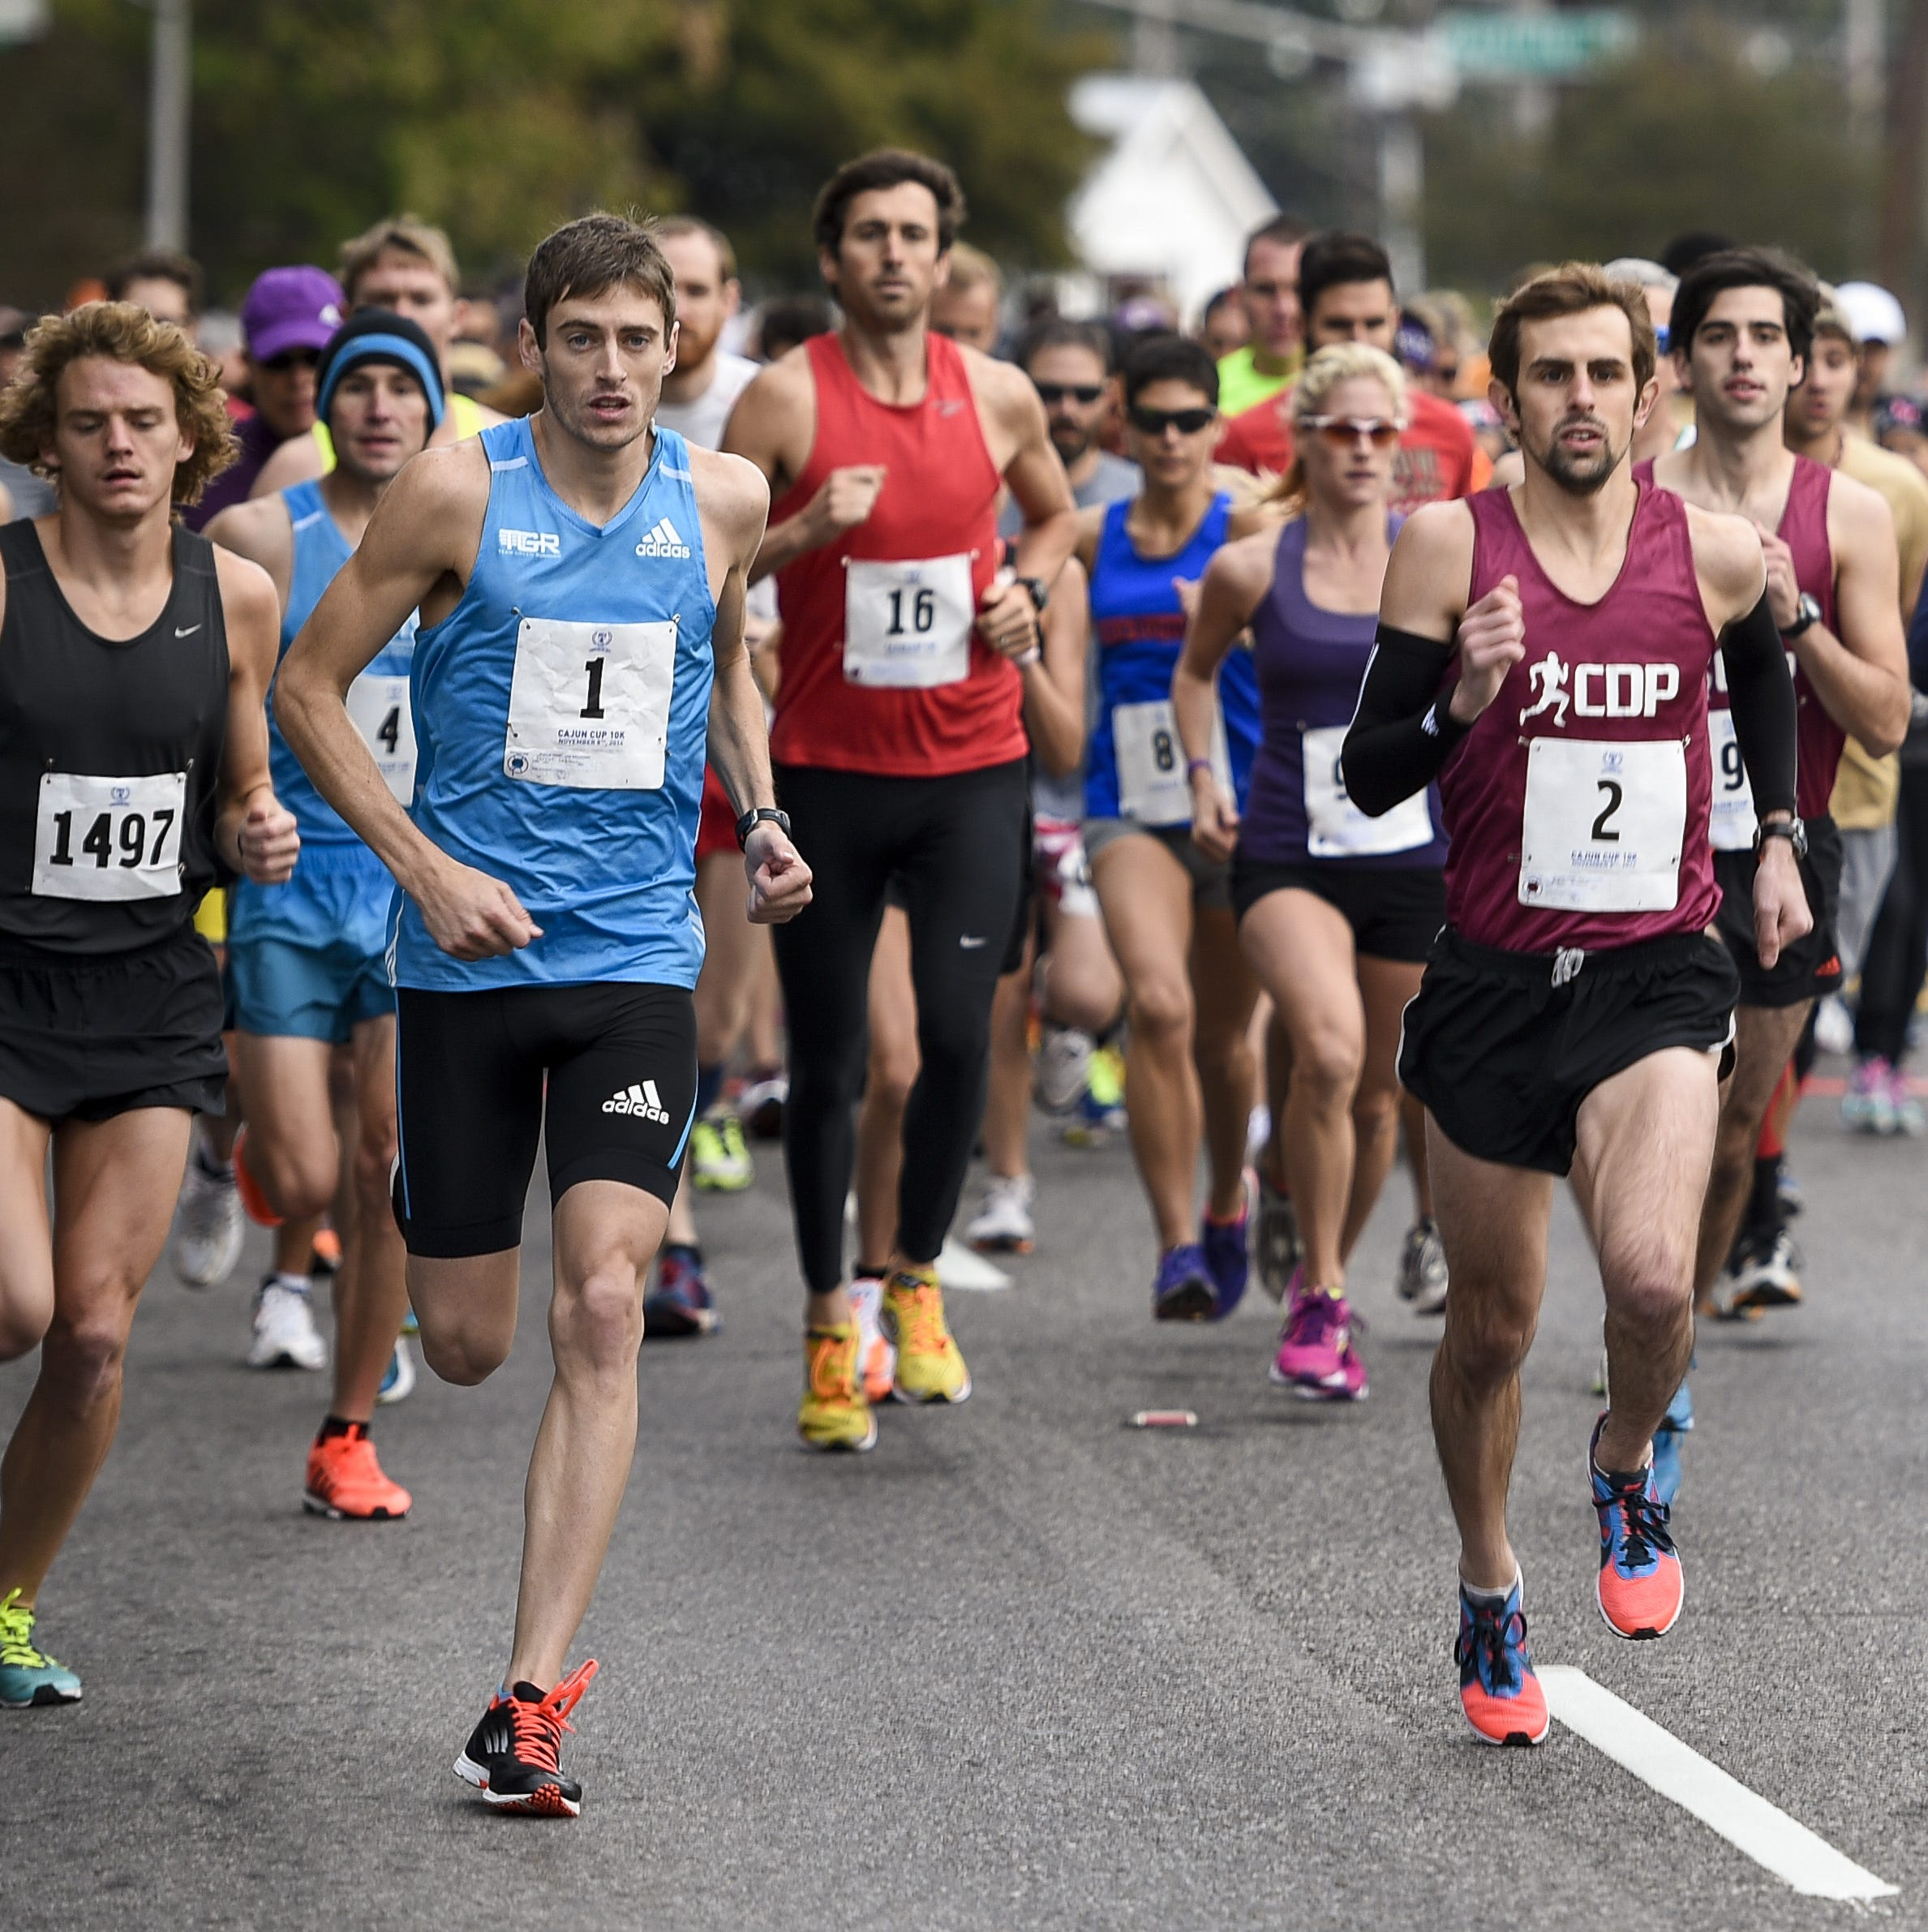 Want to get into shape? There's a 5K for that